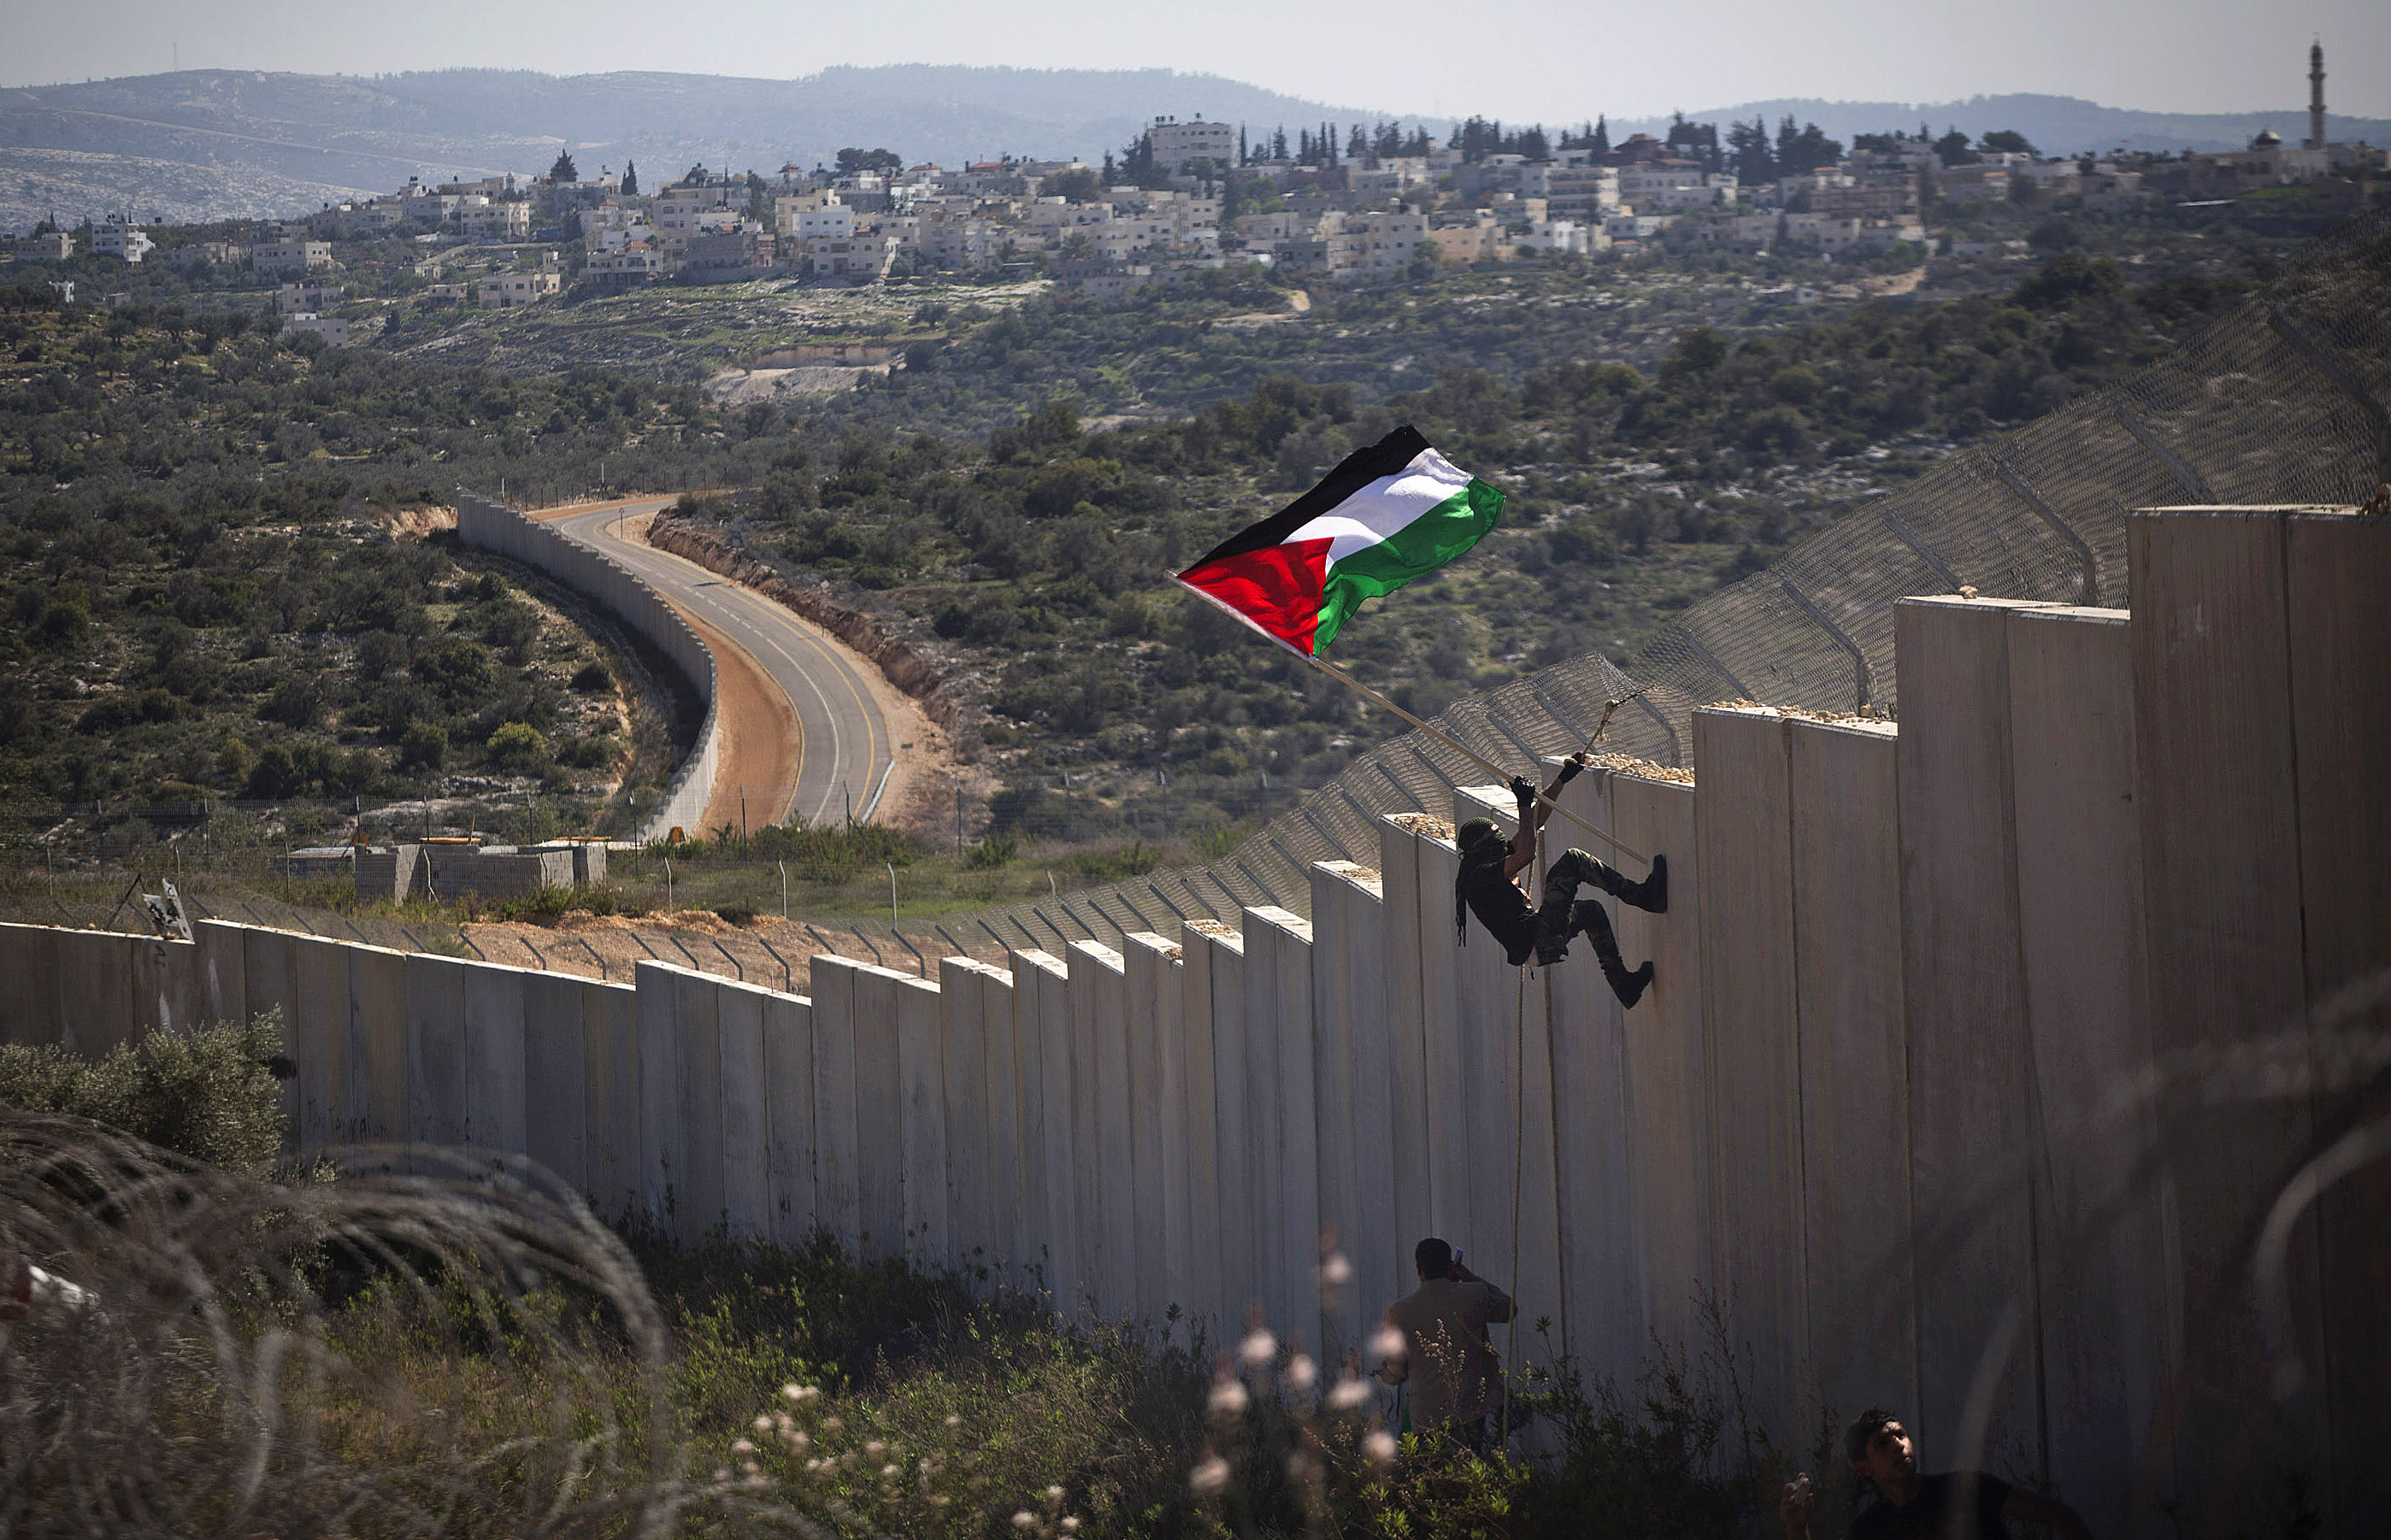 A Palestinian youth placed a flag on the Israeli Separation Wall during a protest marking nine years for the struggle against the wall in the West Bank village of Bil'in, February 28, 2014. (Photo by Oren Ziv/GroundTruth)